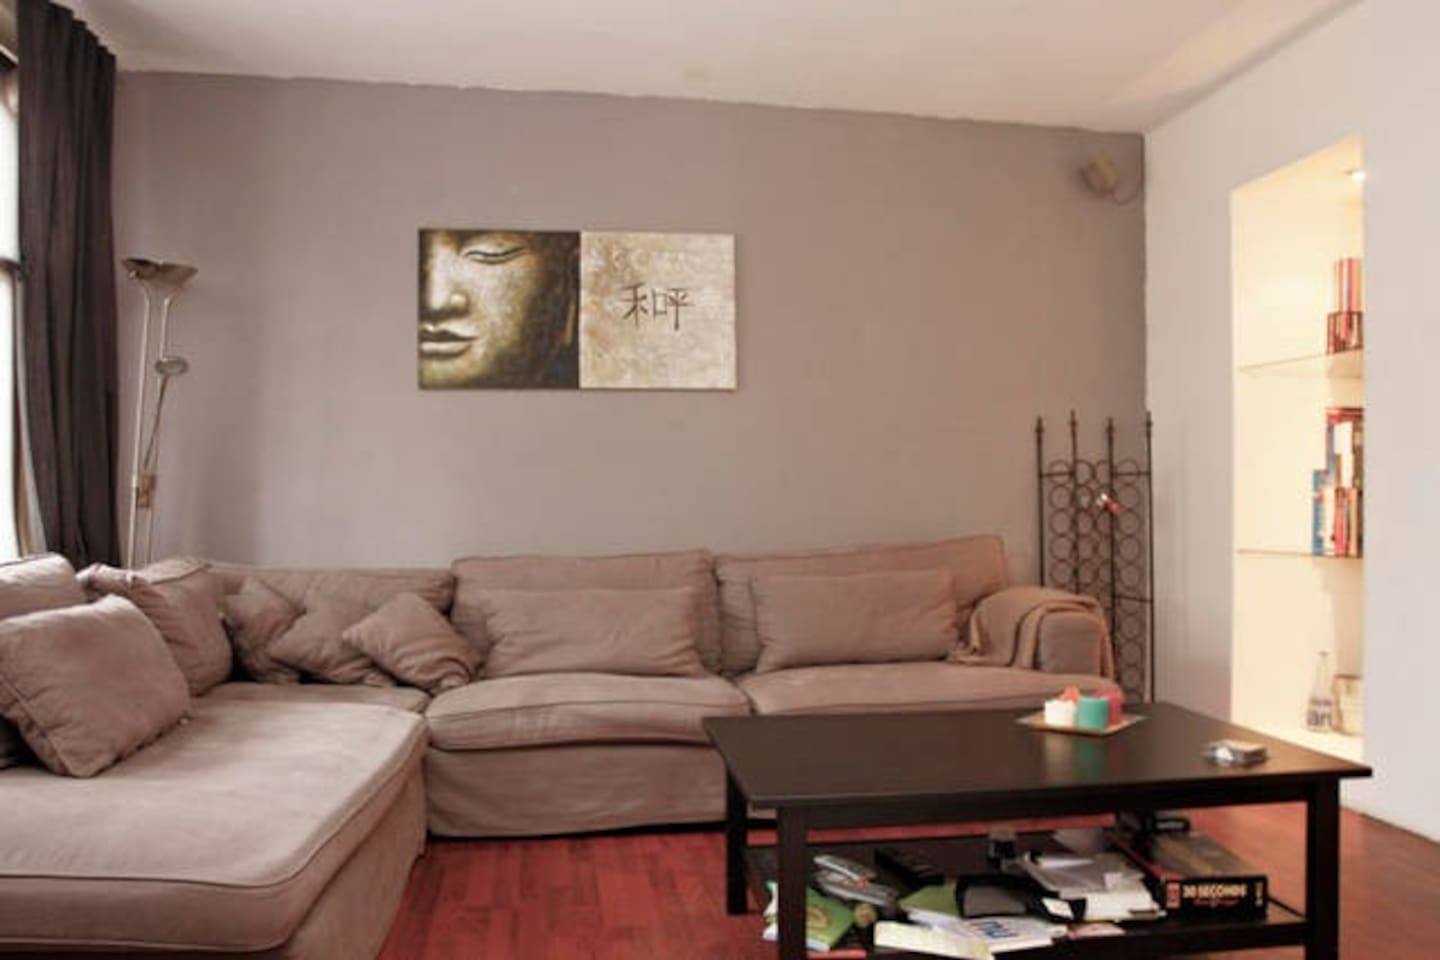 spacious livingroom with big sofa, television, dvd player dvd's